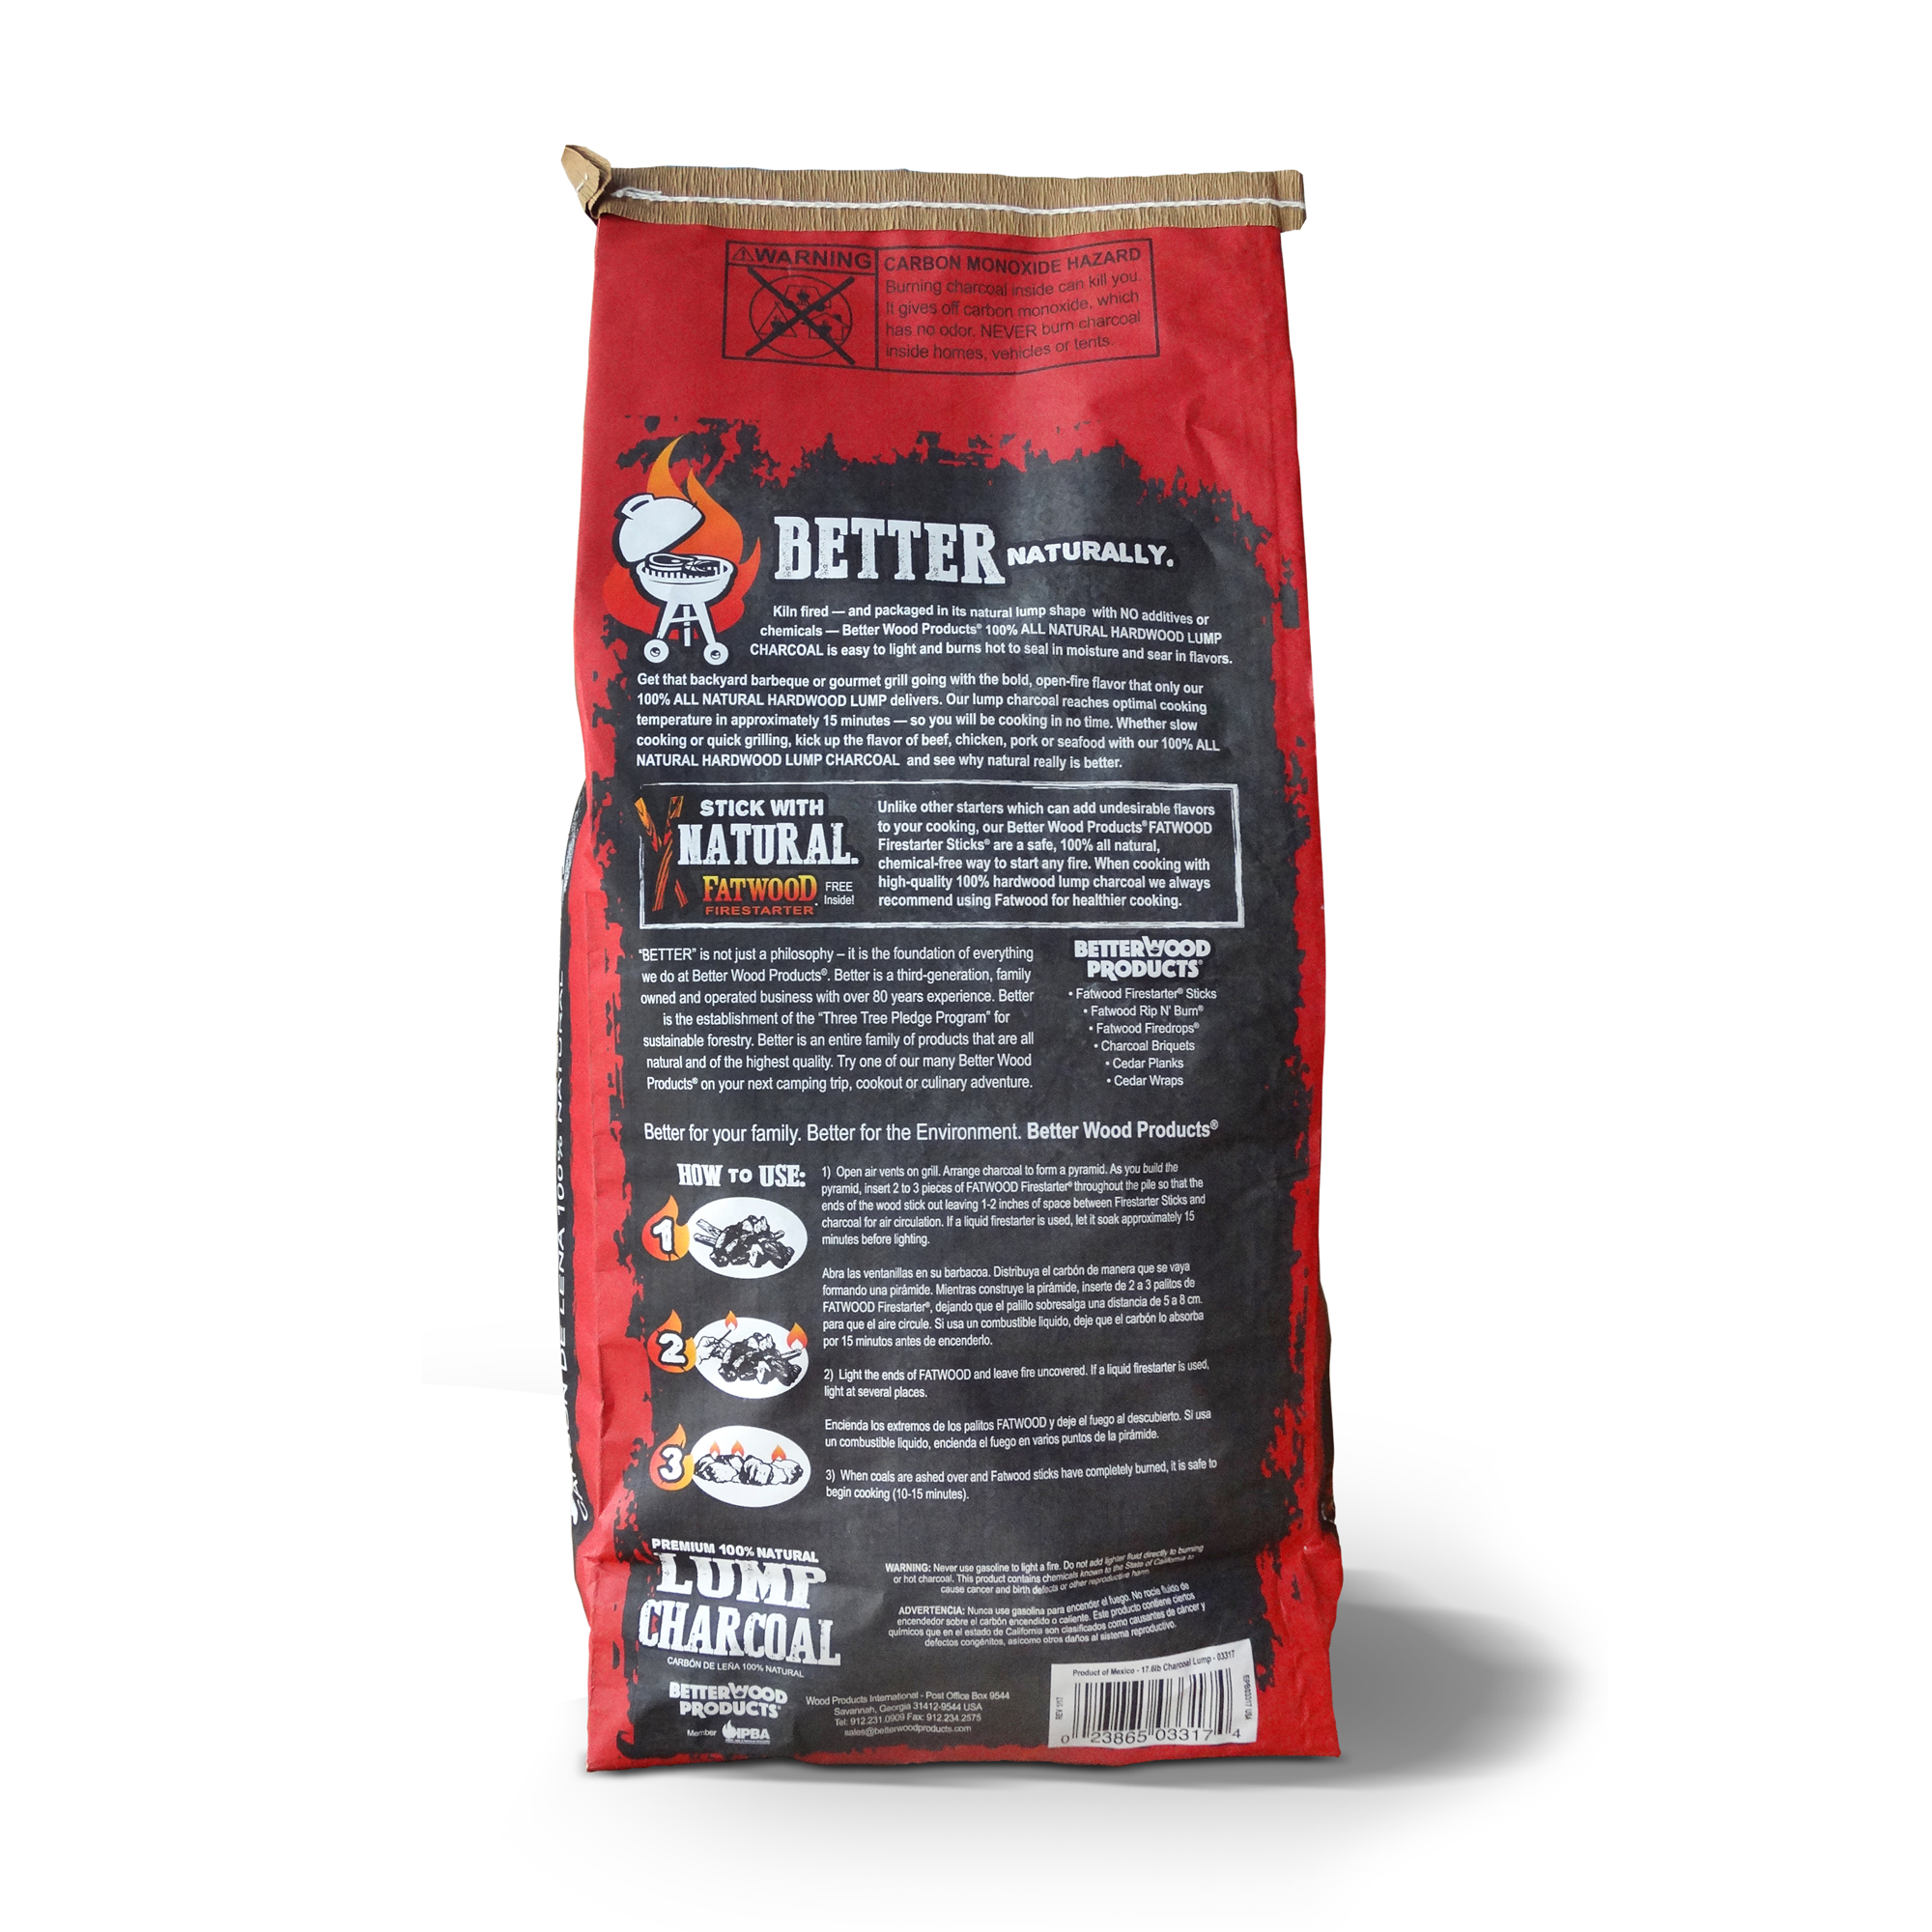 betterwood products 3317 100 all natural hardwood lump charcoal 17 6 pounds